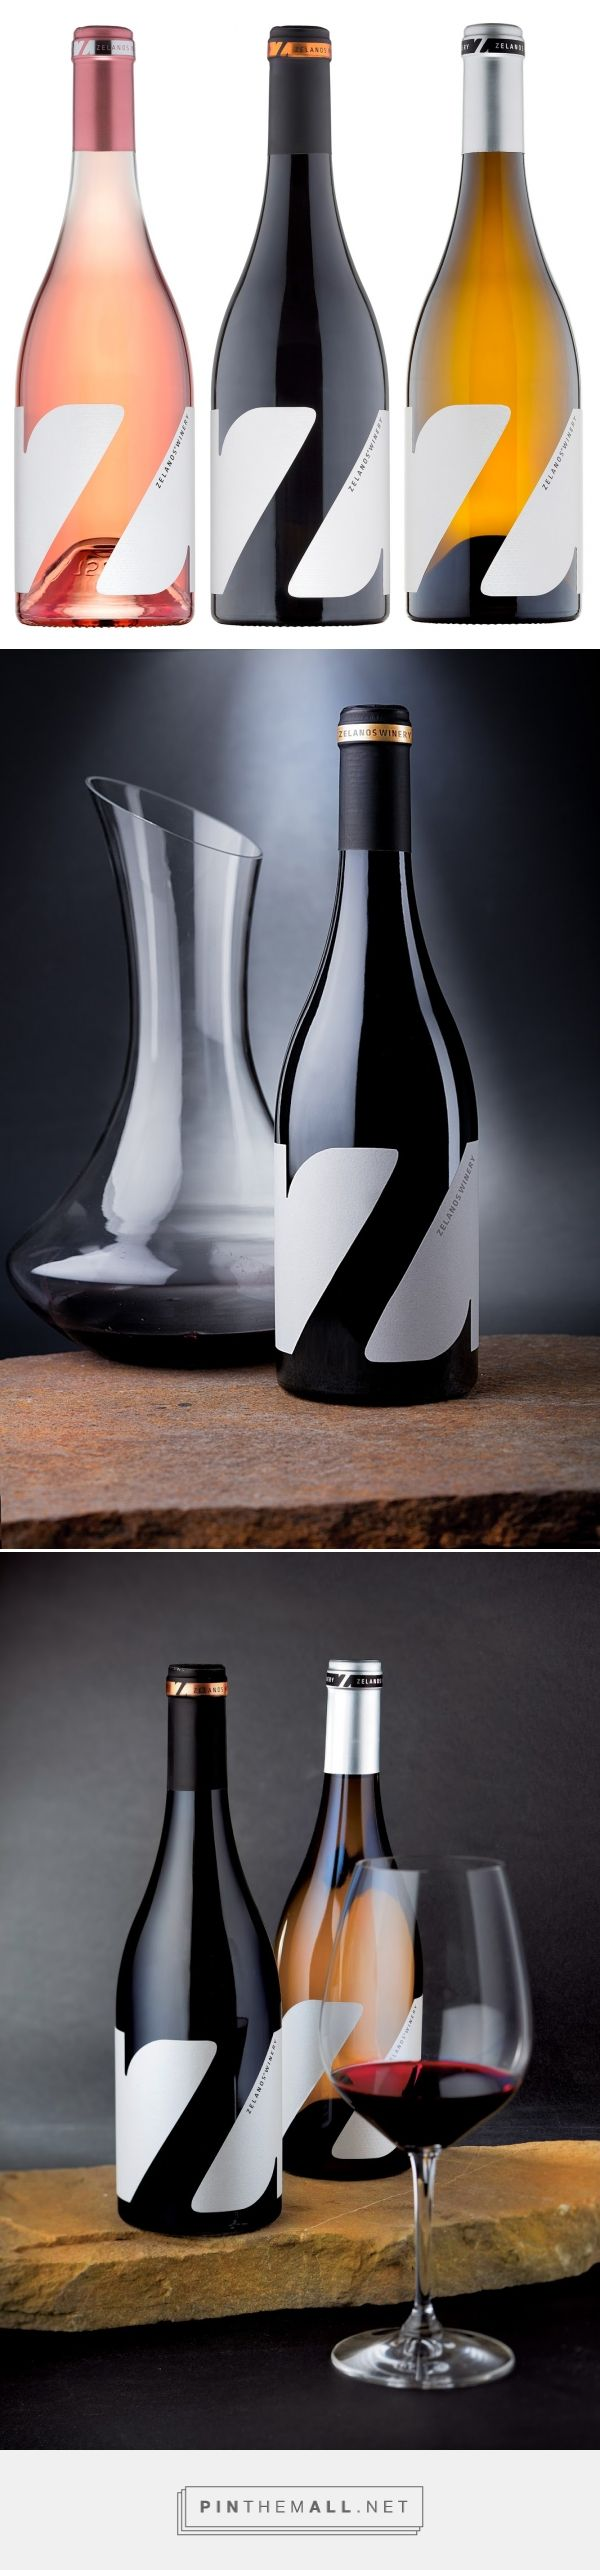 Z Wine Labels design by The Labelmaker - http://www.packagingoftheworld.com/2016/10/z-wine-labels.html